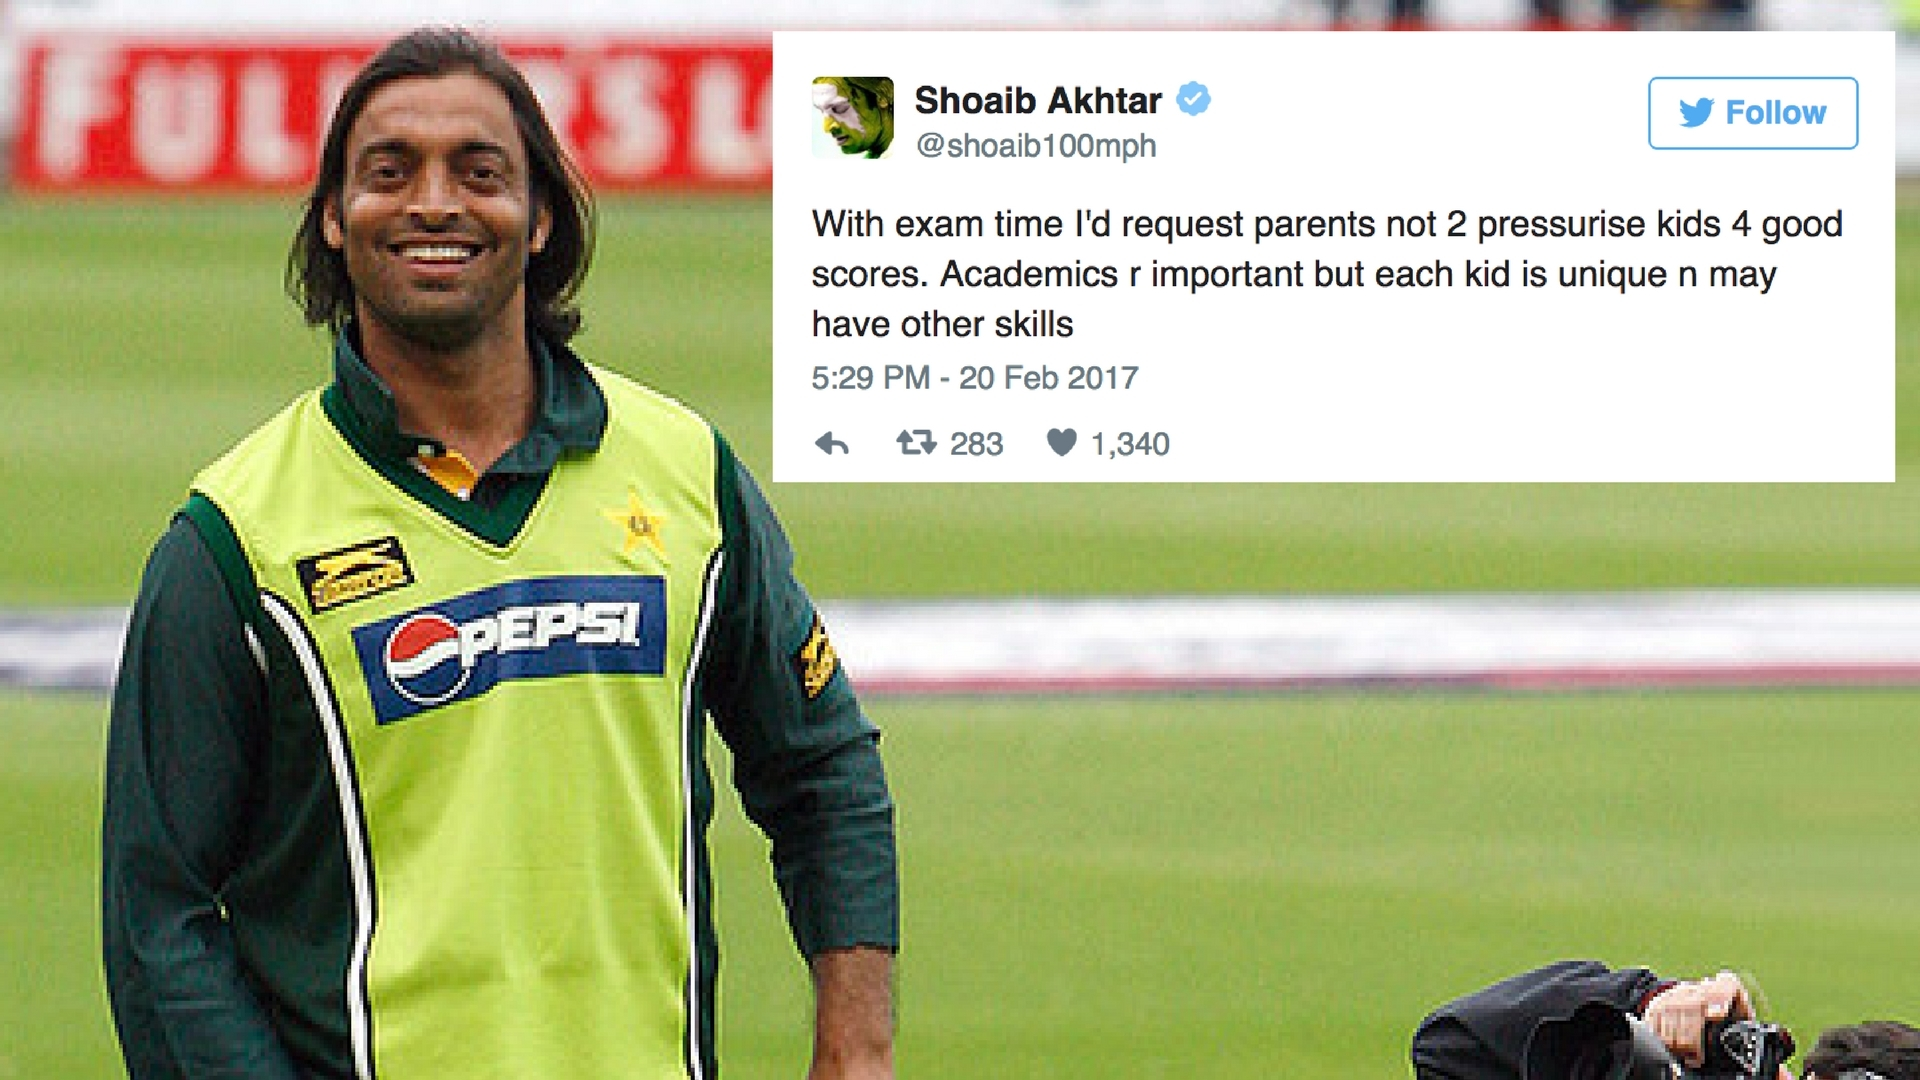 Shoaib Akhtar Has a Message for Parents, Kids Before Board